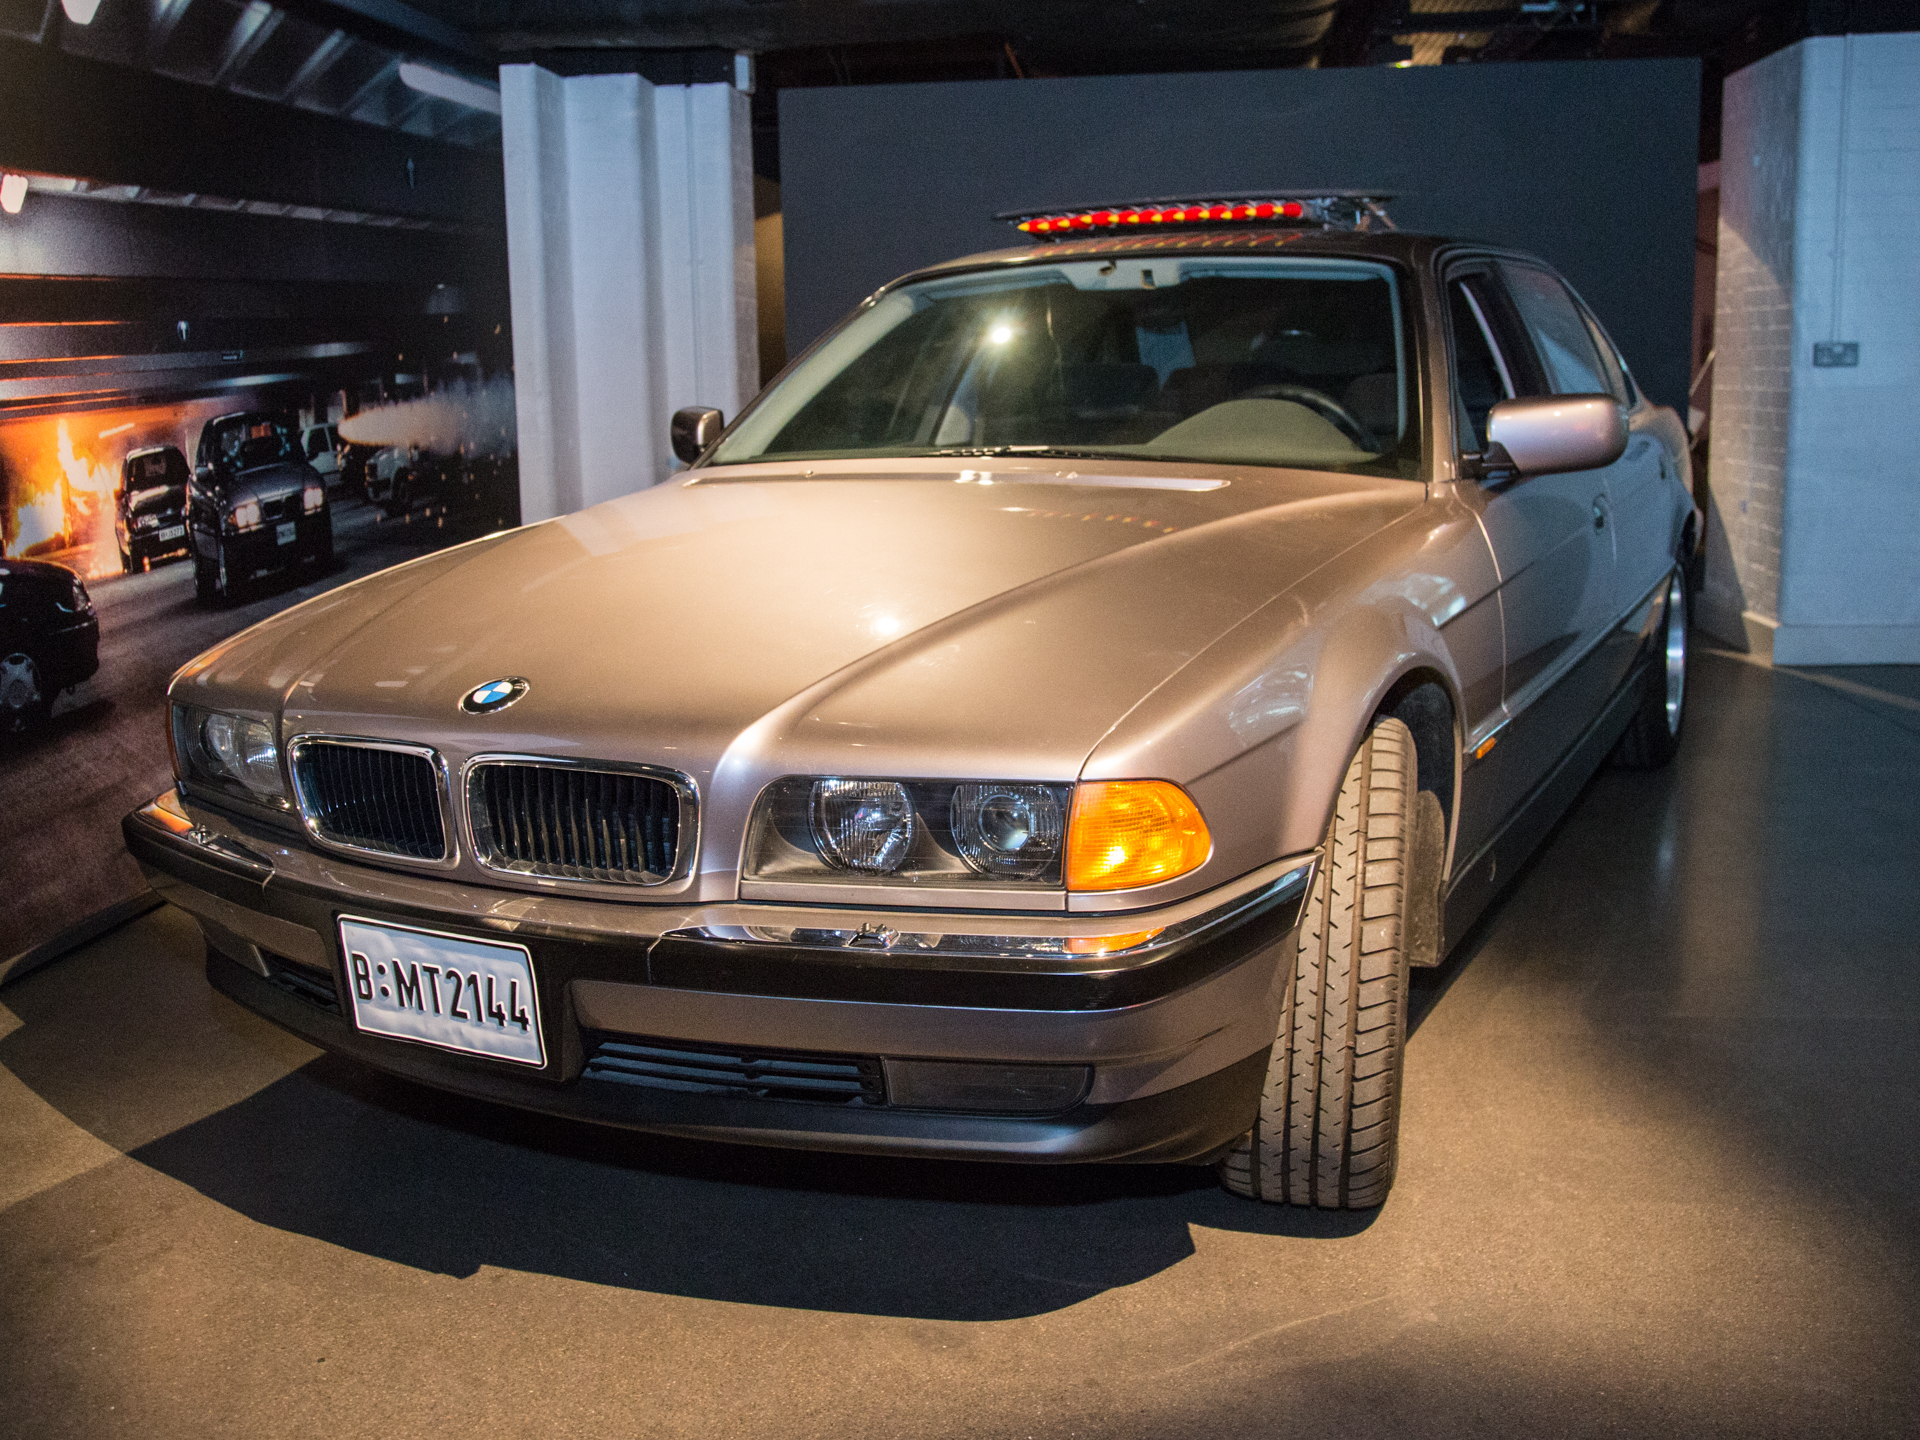 The BMW 750i featured in Tomorrow Never Dies